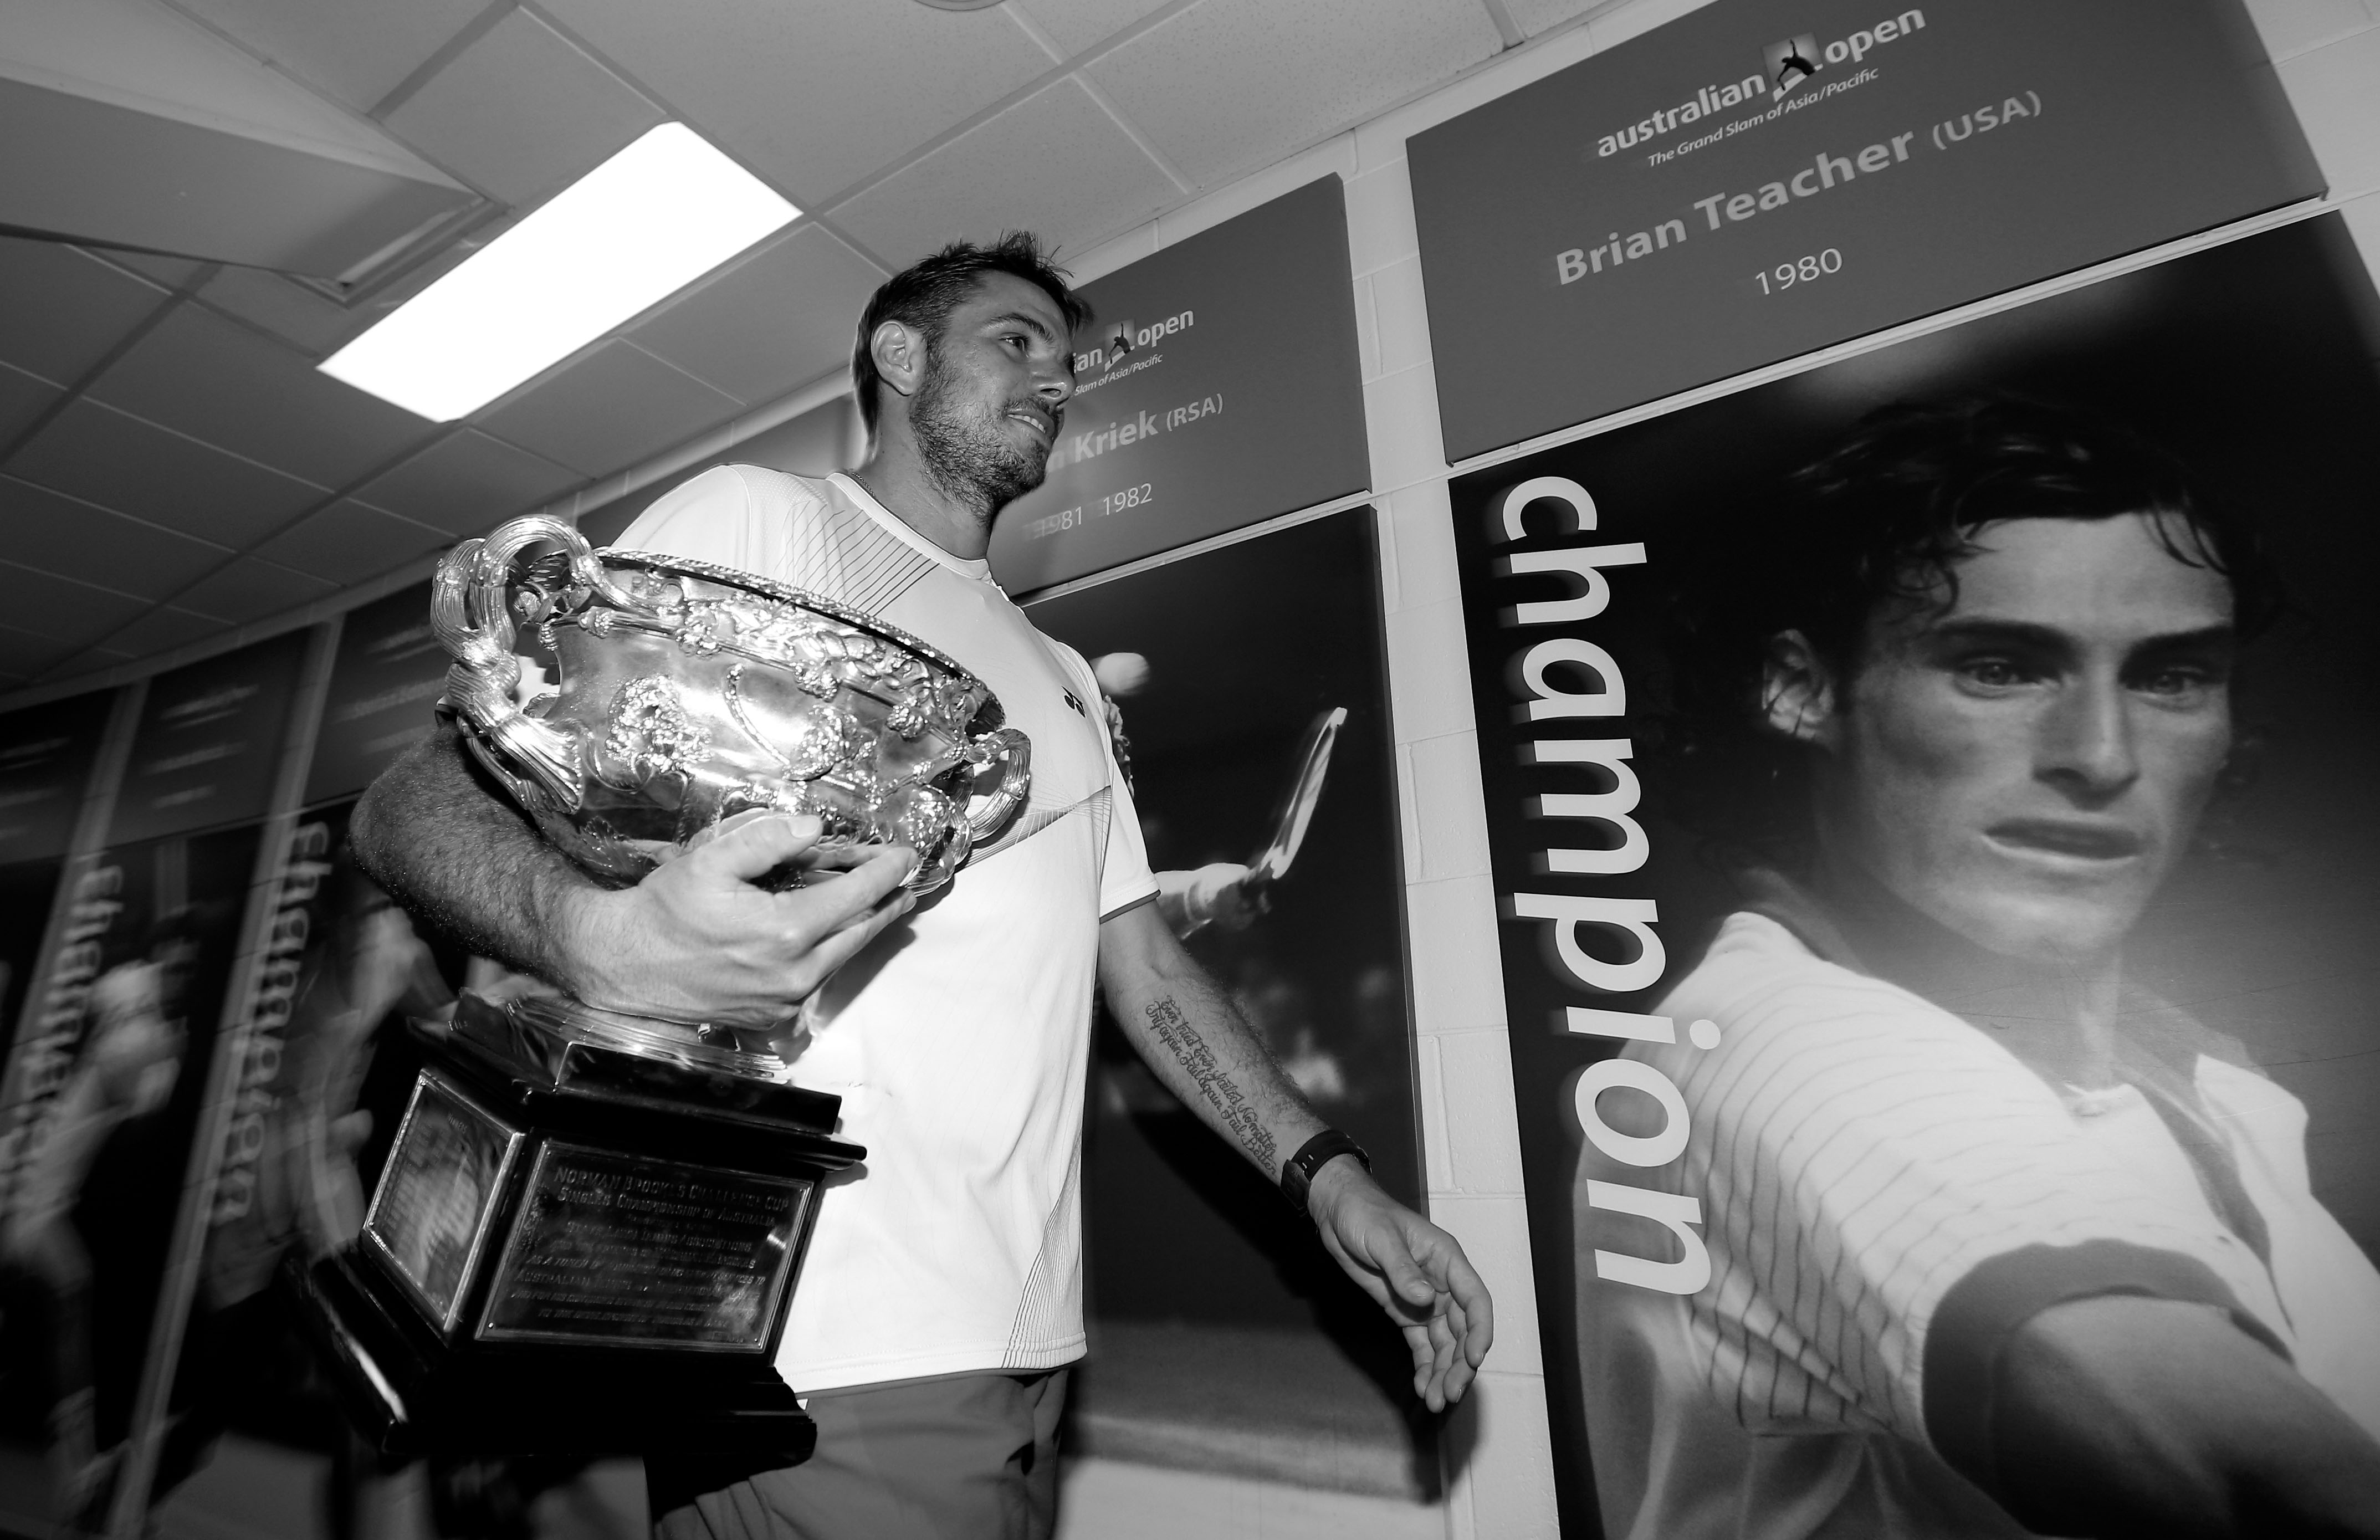 Wawrinka in front of a photo of Brian Teacher, the last man to win the Australian Open as the No. 8 seed.